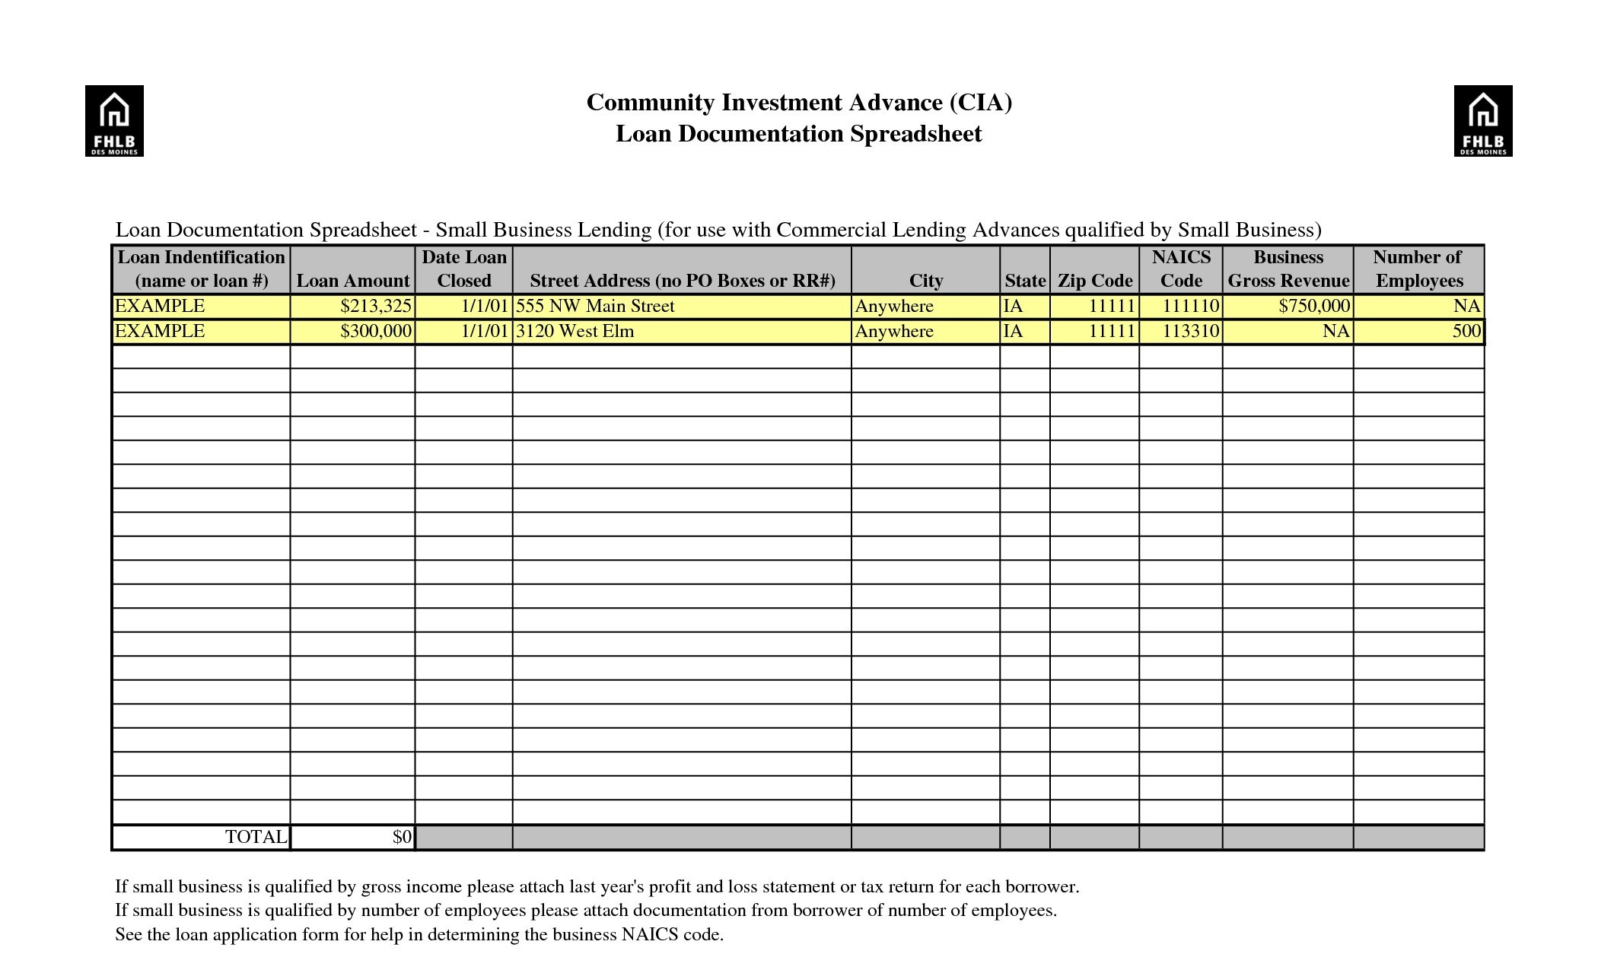 Excel Template For Business Expenses New Business Bud Spreadsheet In Spreadsheet Template For Small Business Expenses